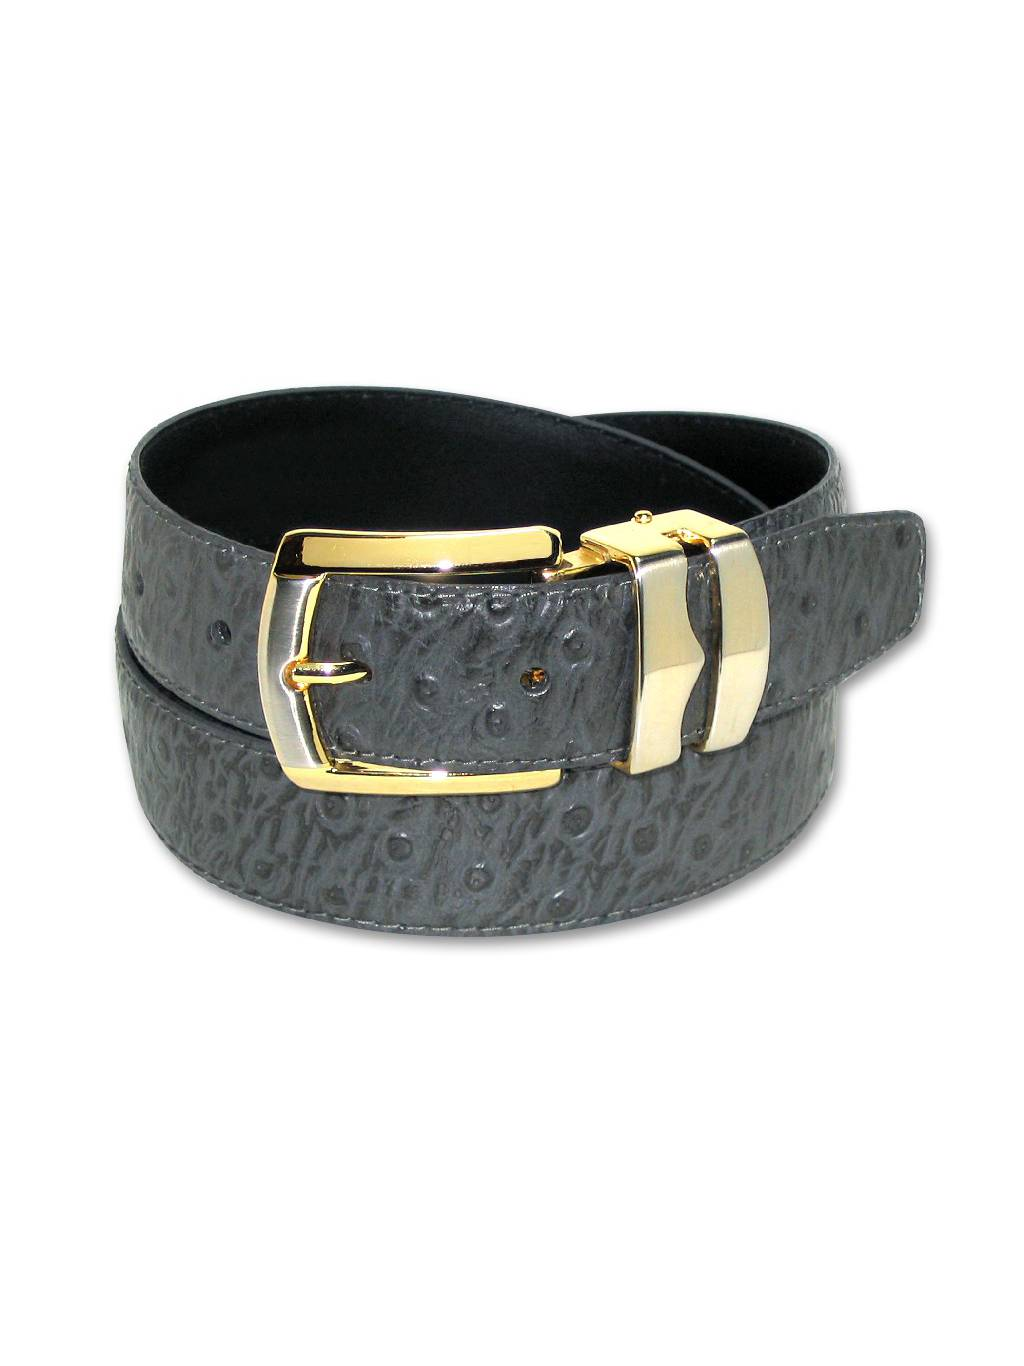 Reversible Belt Bonded Leather with Removable Gold-Tone Buckle BLACK//Charcoal